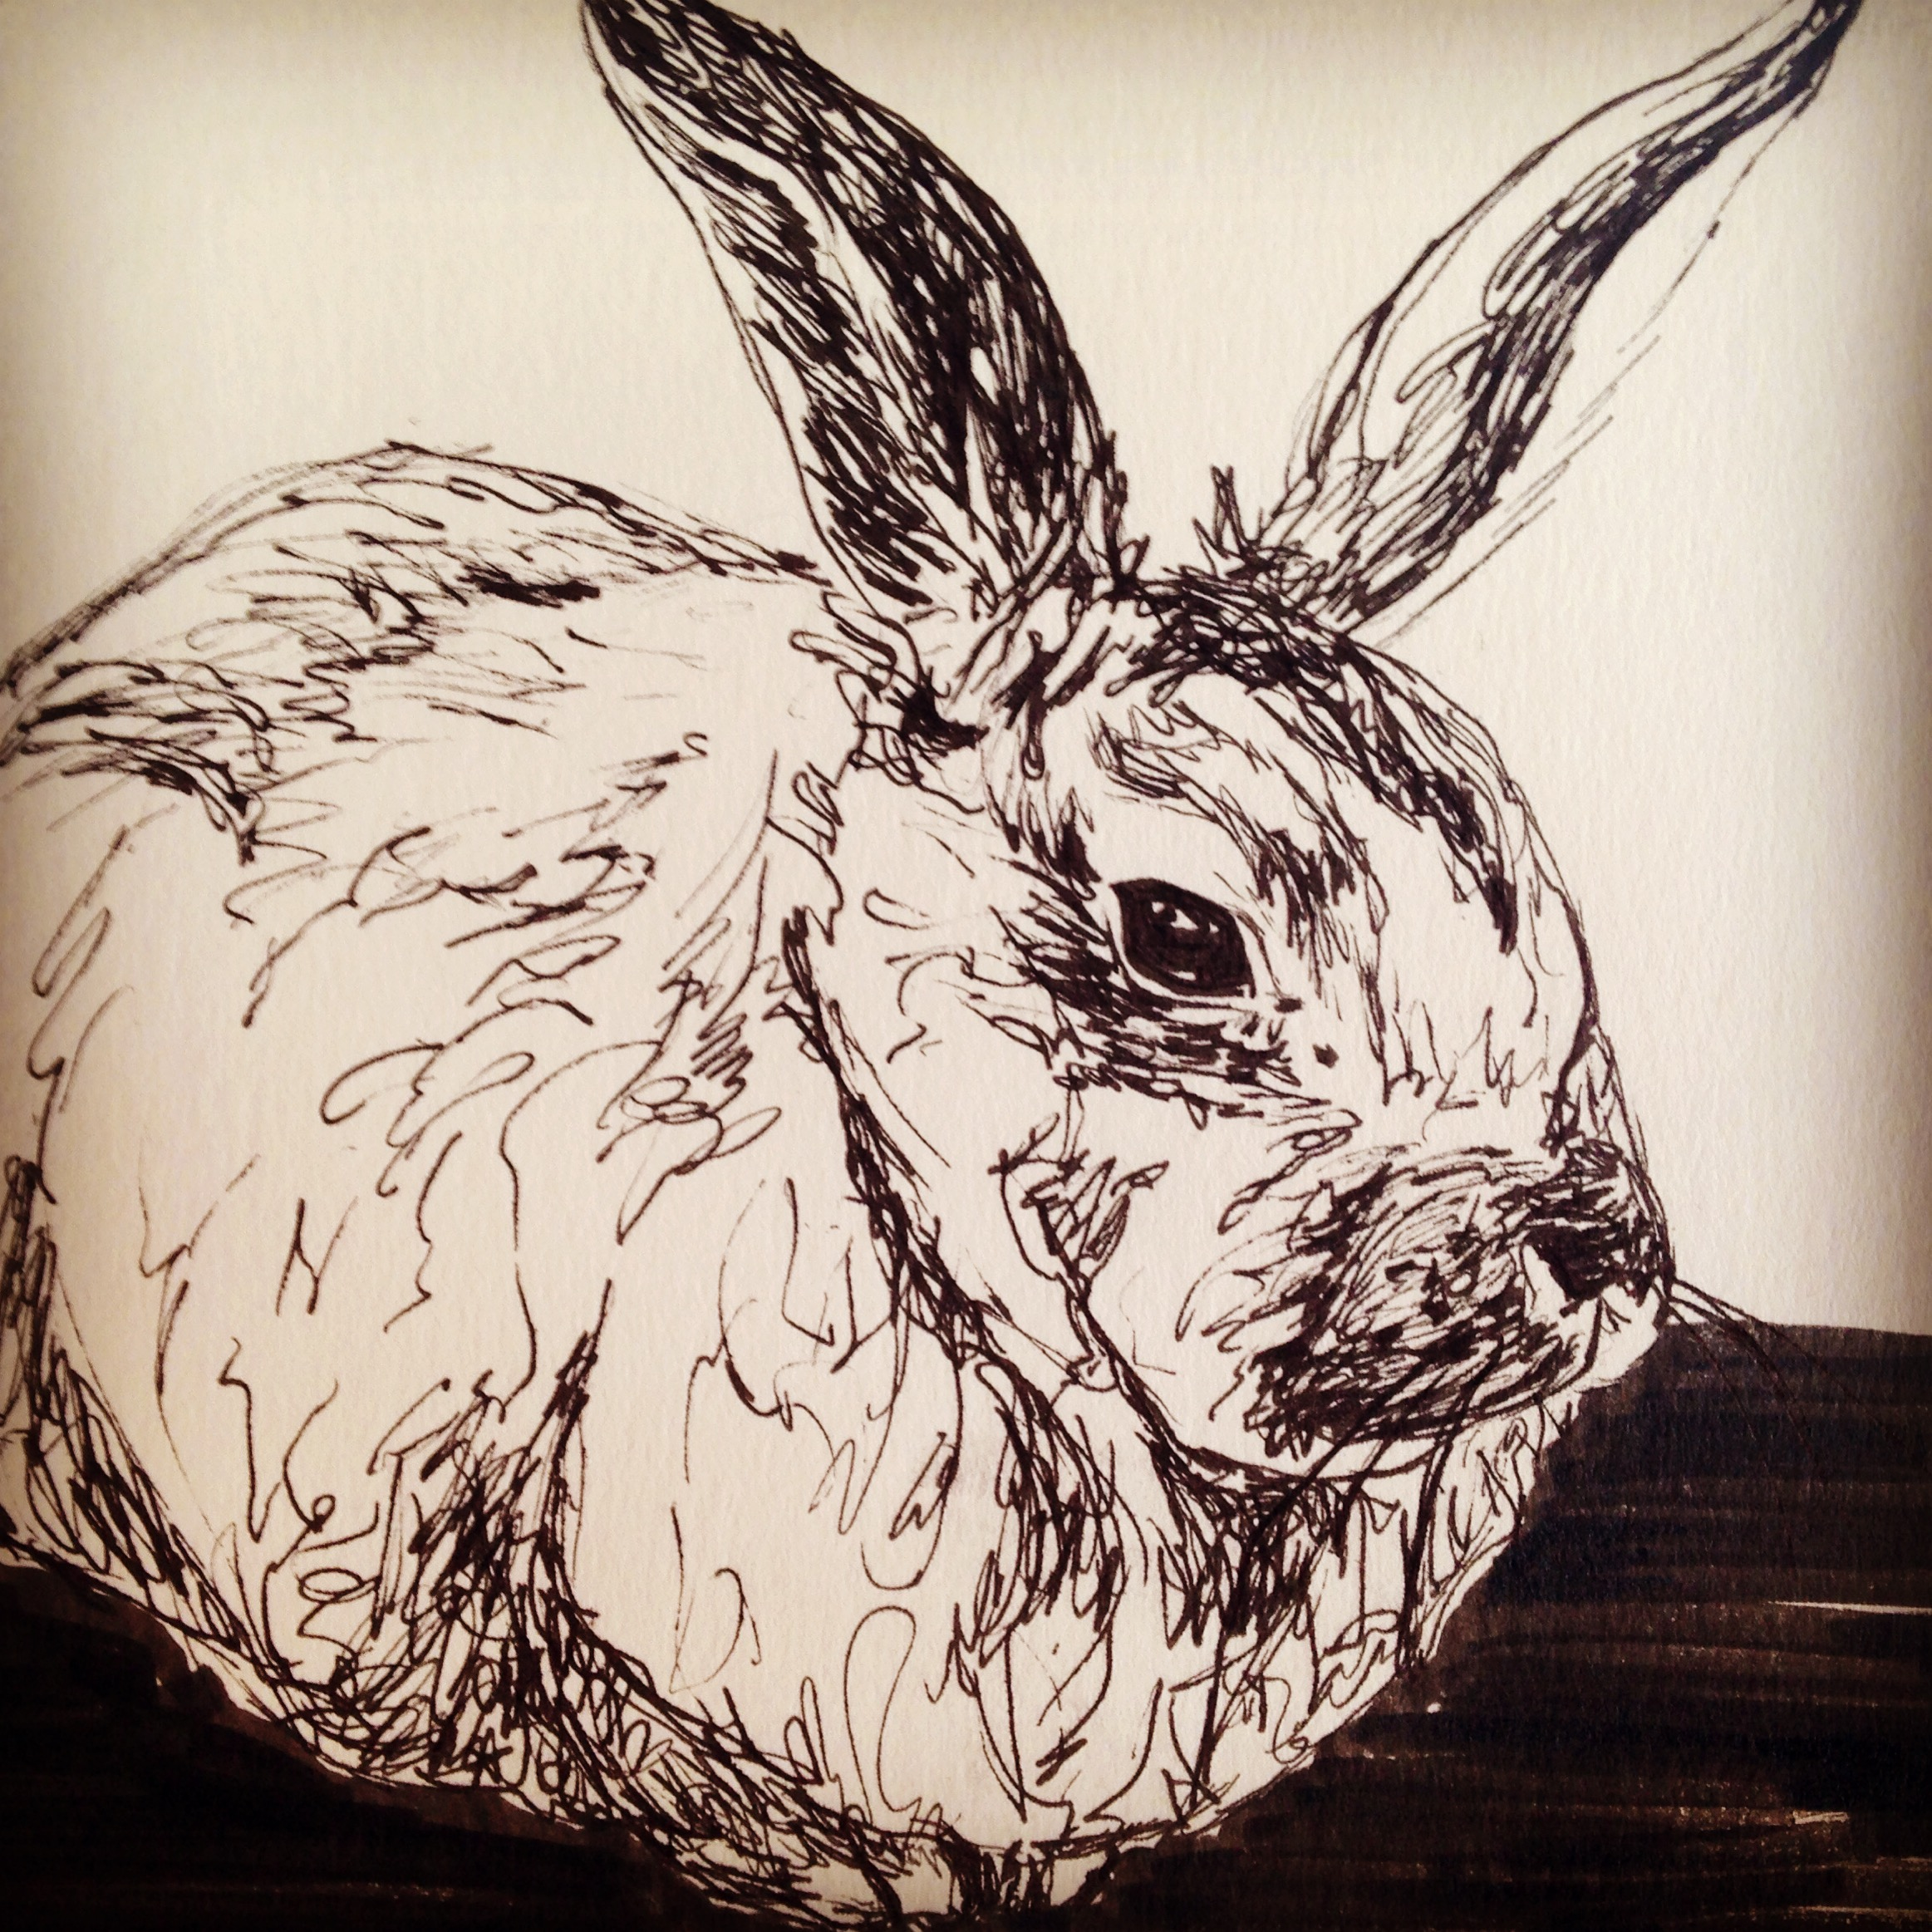 My artist friend Adonna sent a photo of her adopted bunny so I drew it.